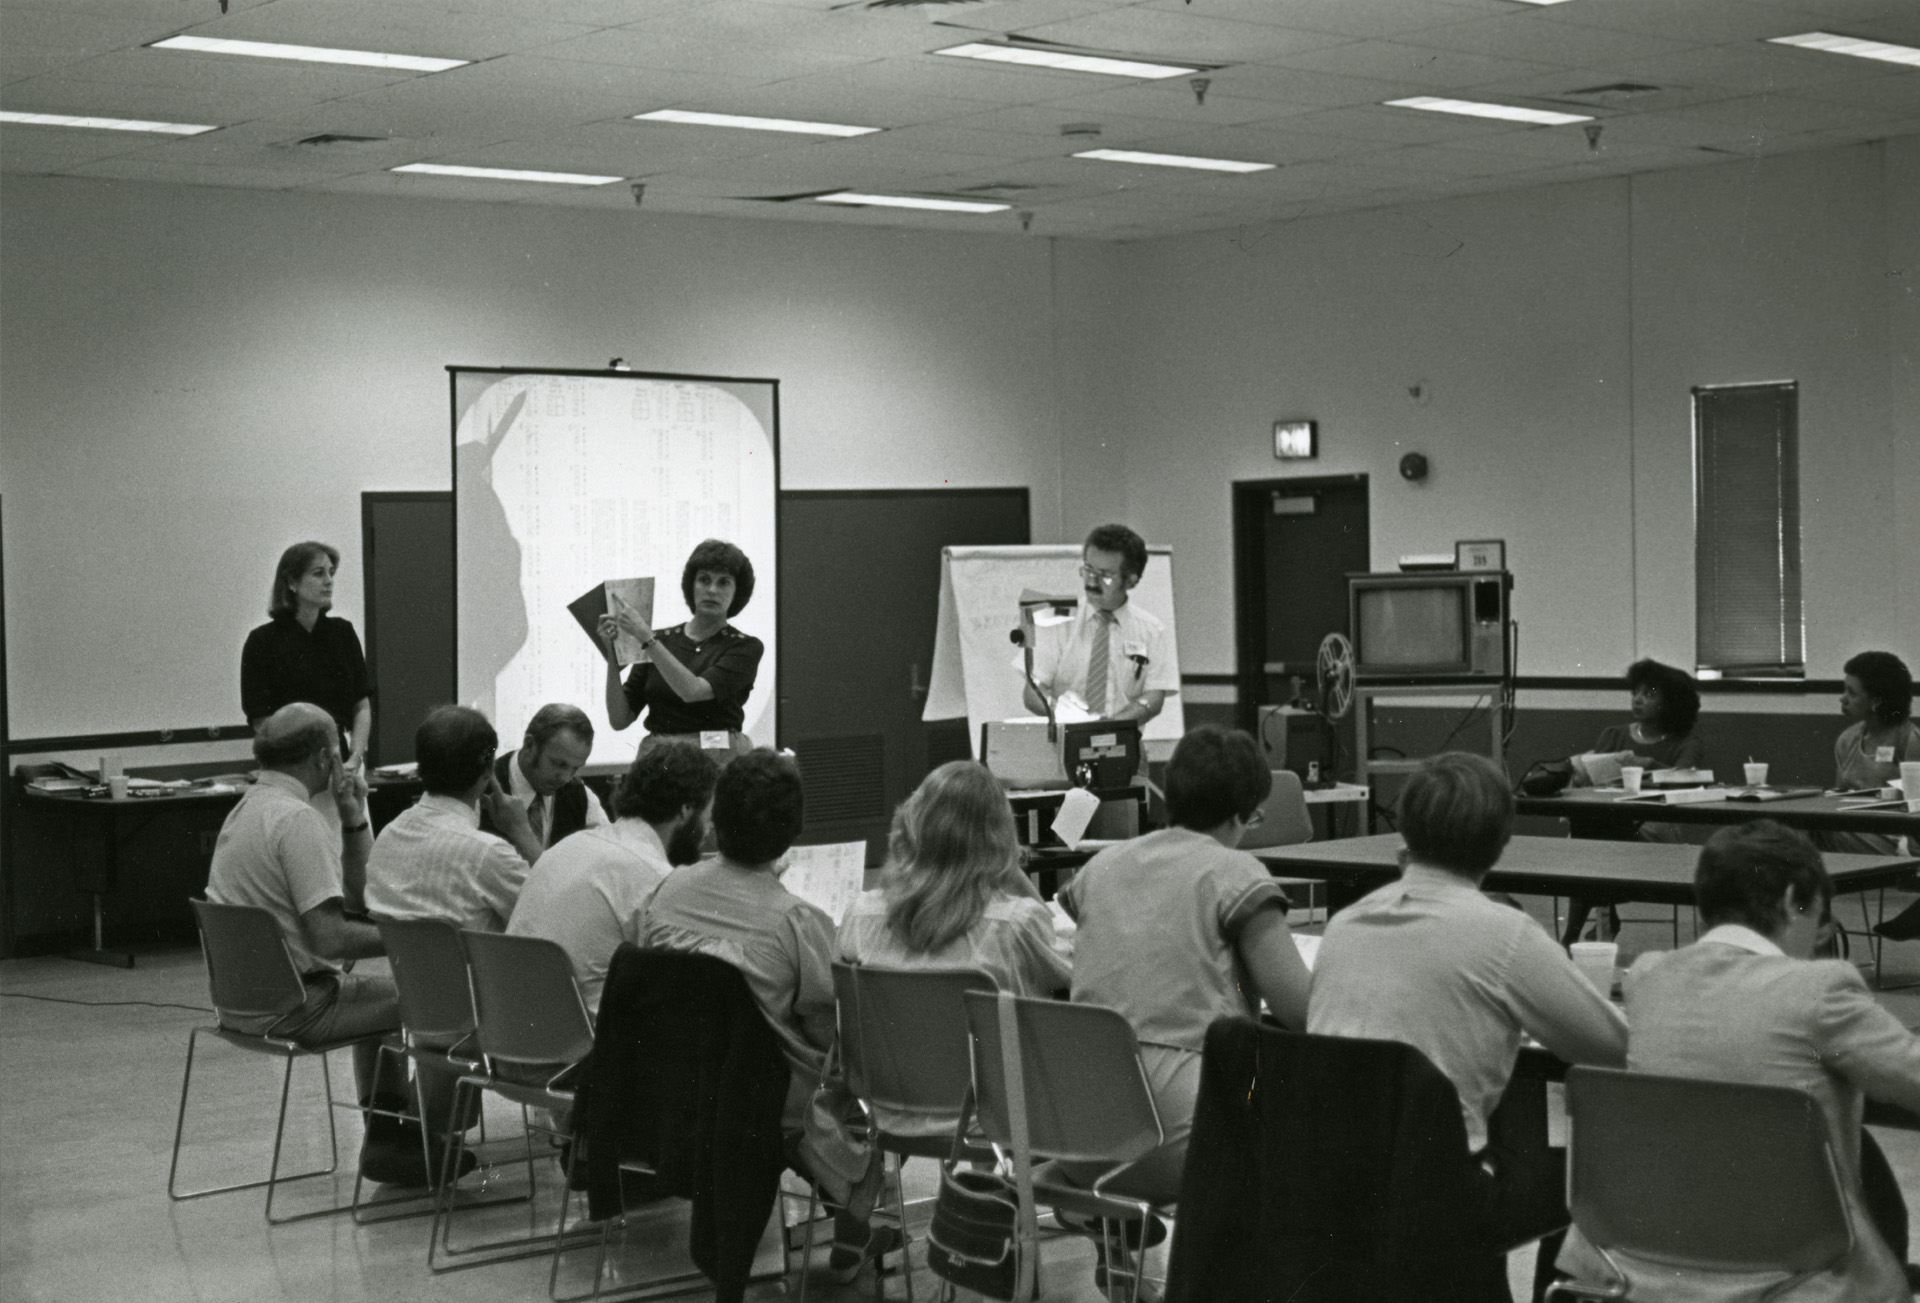 Blk/White photo of classroom looking at students on their desk from behind - not in semi-circle formation.